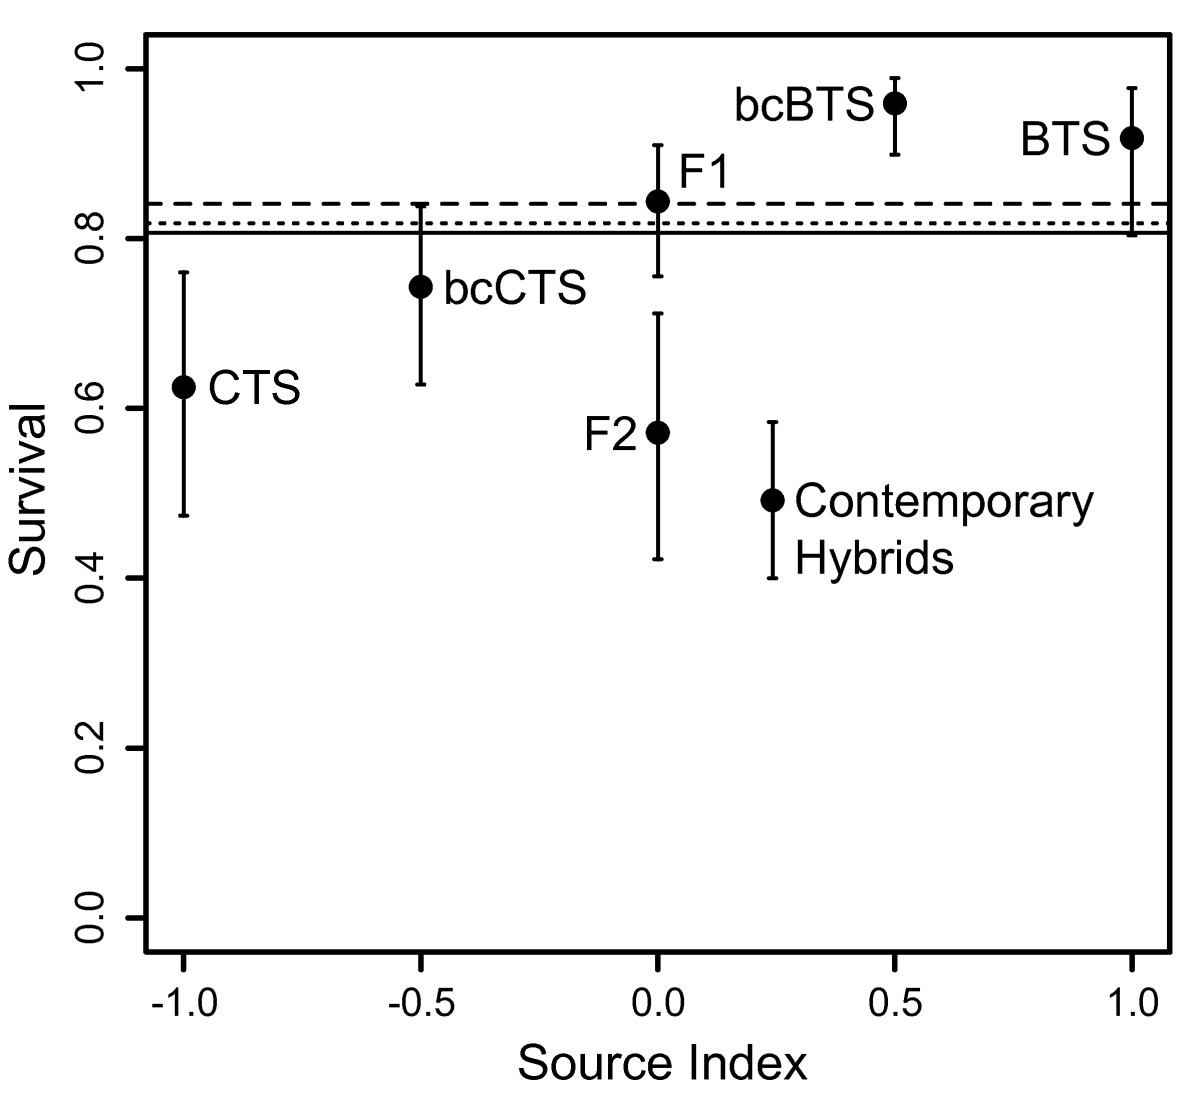 http://static-content.springer.com/image/art%3A10.1186%2F1471-2148-10-147/MediaObjects/12862_2009_Article_1363_Fig1_HTML.jpg